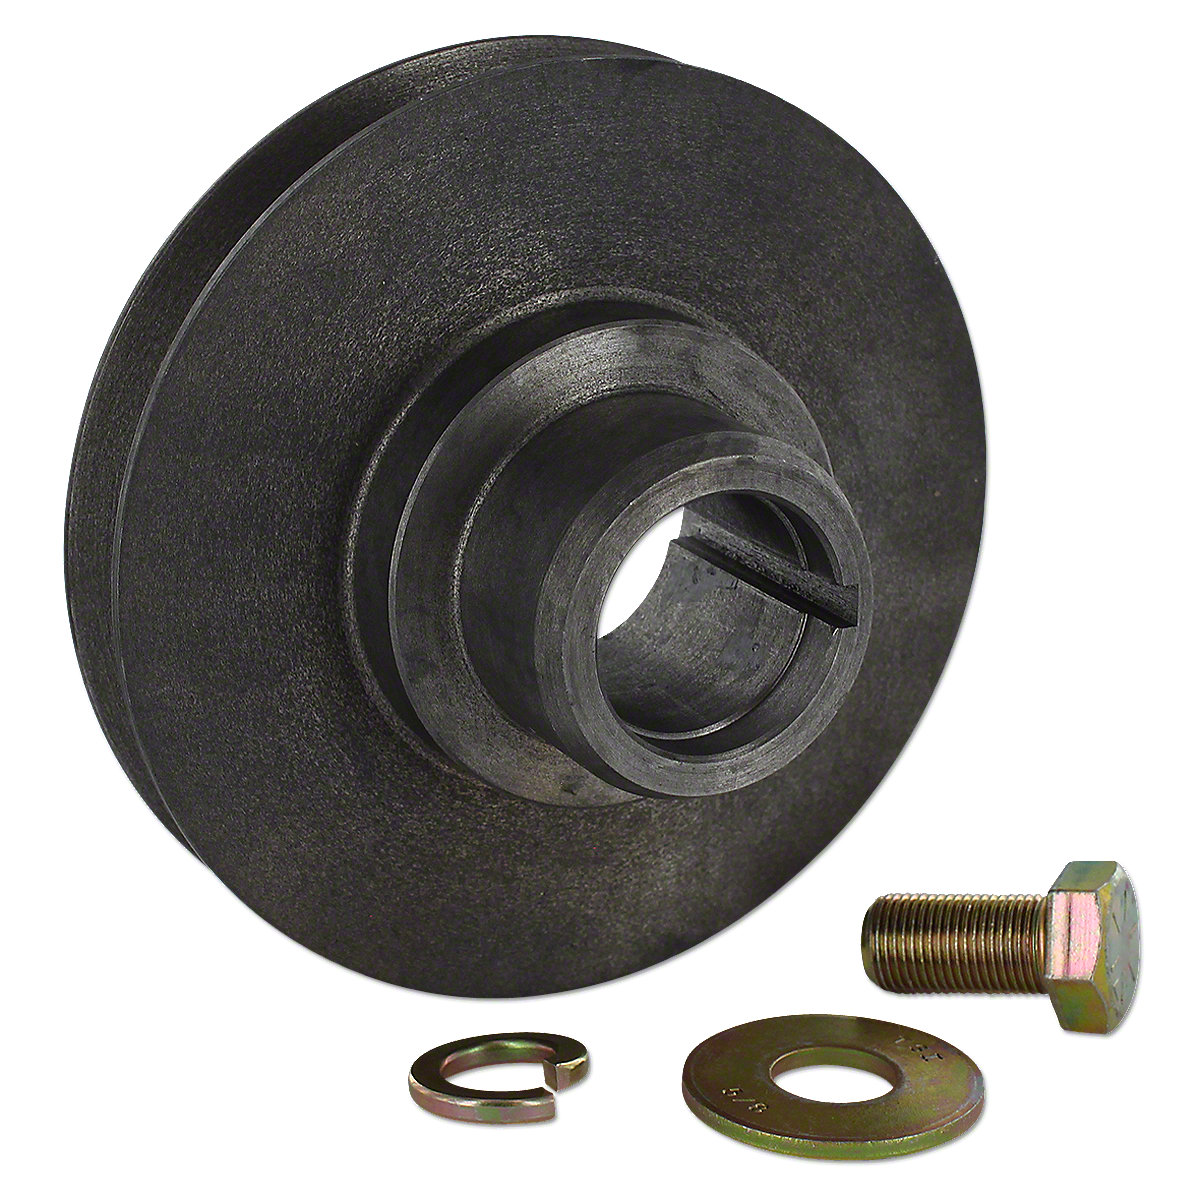 Front Crank Shaft Pulley For Massey Ferguson: TE20, TO20, TO30.